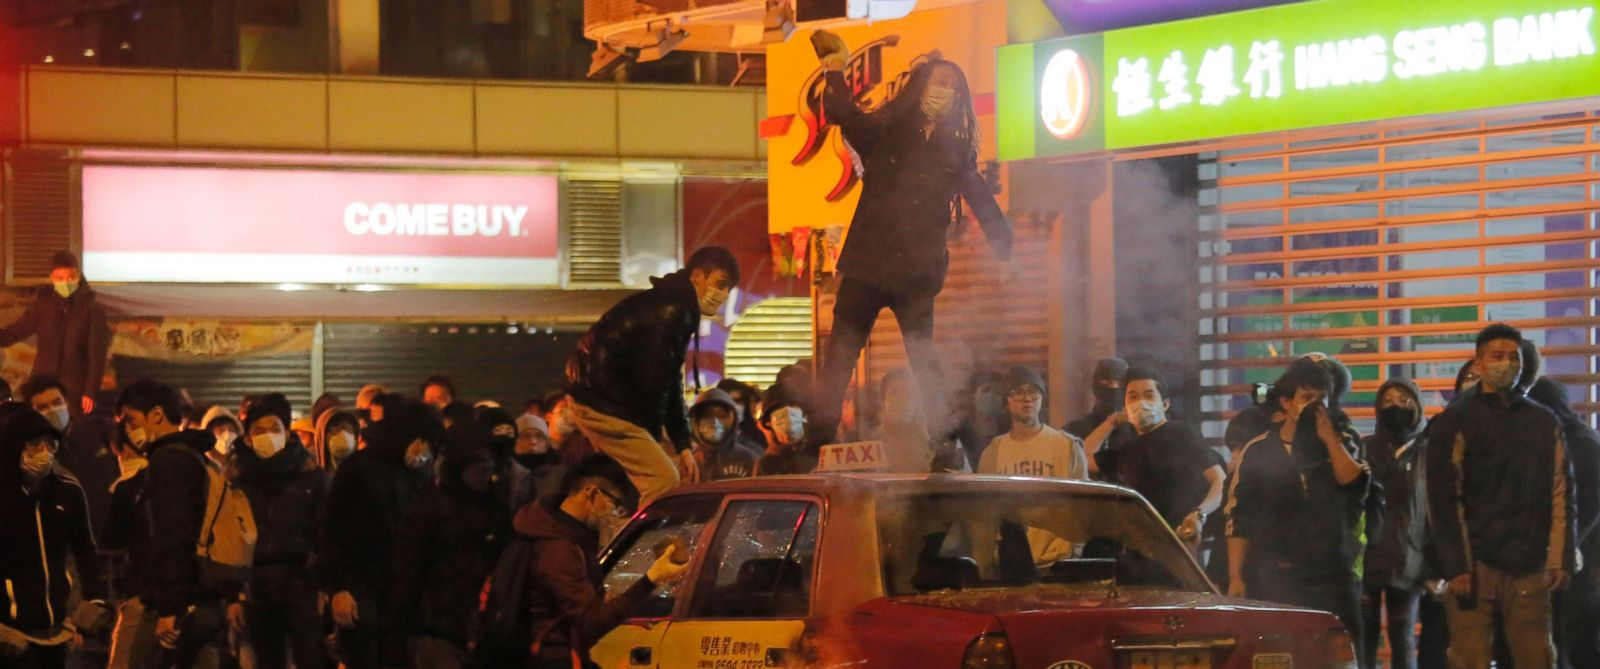 PHOTO: Rioters throw bricks at police in Mong Kok district of Hong Kong, Feb. 9, 2016.